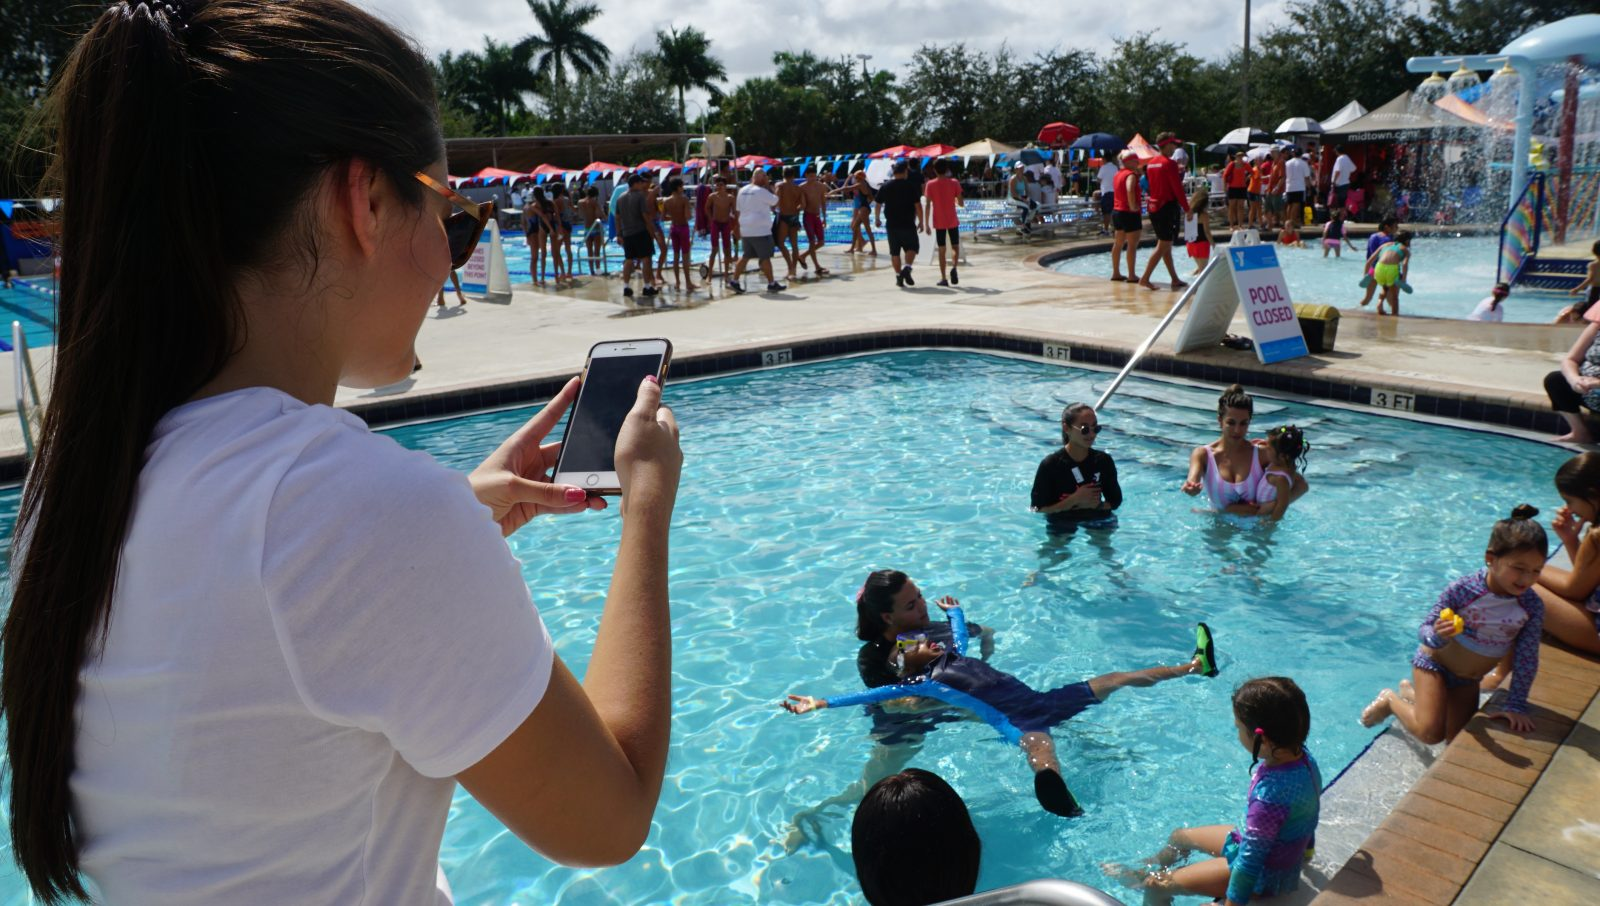 BRINGING AWARENESS TO WATER SAFETY & DROWNING PREVENTION